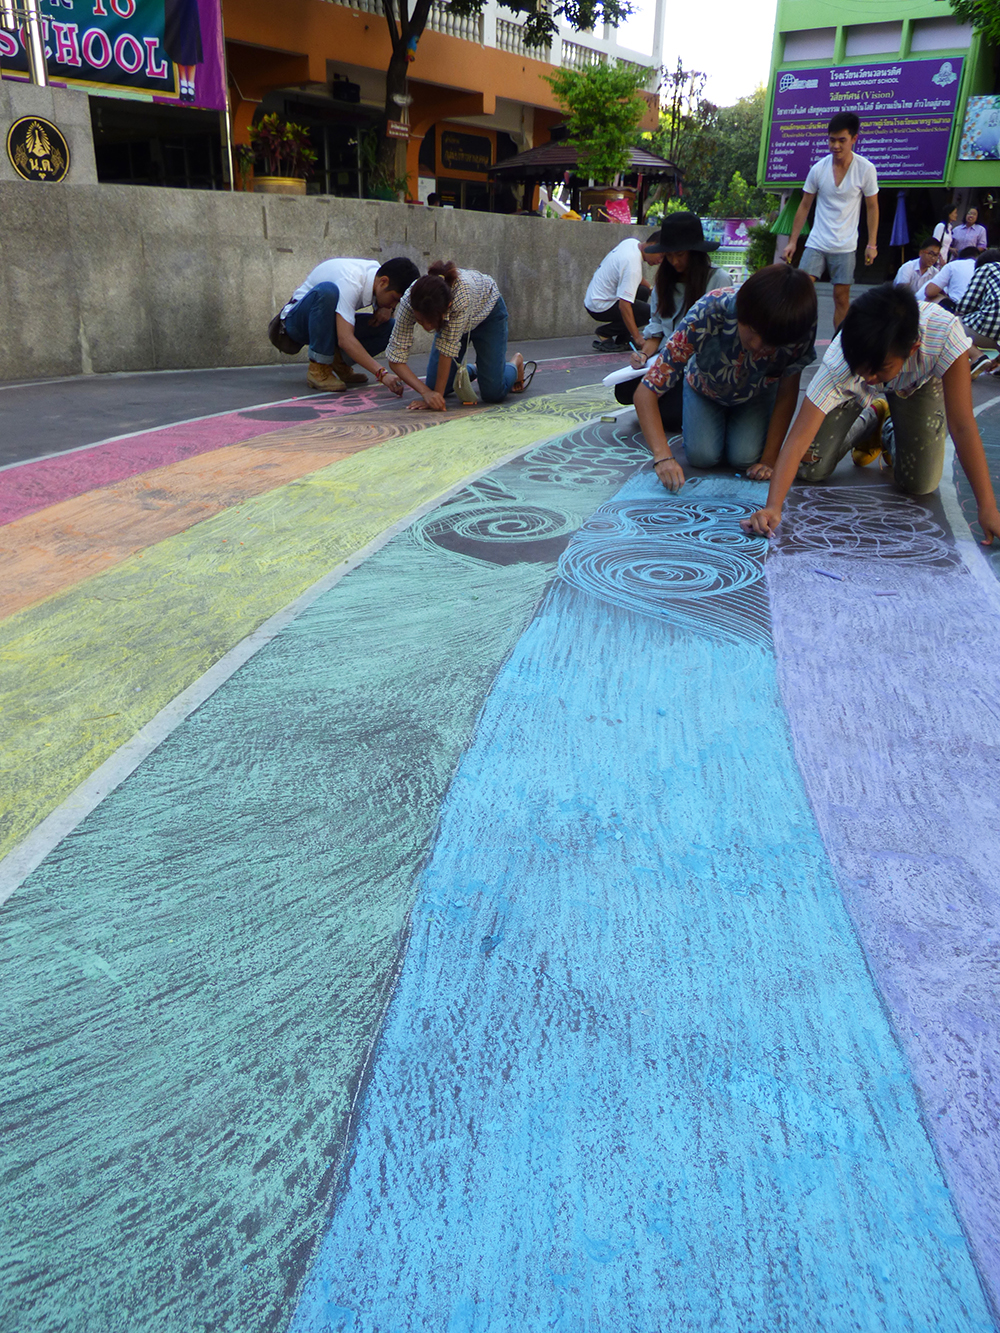 The #schoolrainbow at Wat Nuannoradit school started as usual with solid bands of coloured chalk but then got decidedly arty. Waves, patterns, even birds and a dragon filled the rest of this rainbow.  ©UNAIDS/UNESCO/H.Nhan